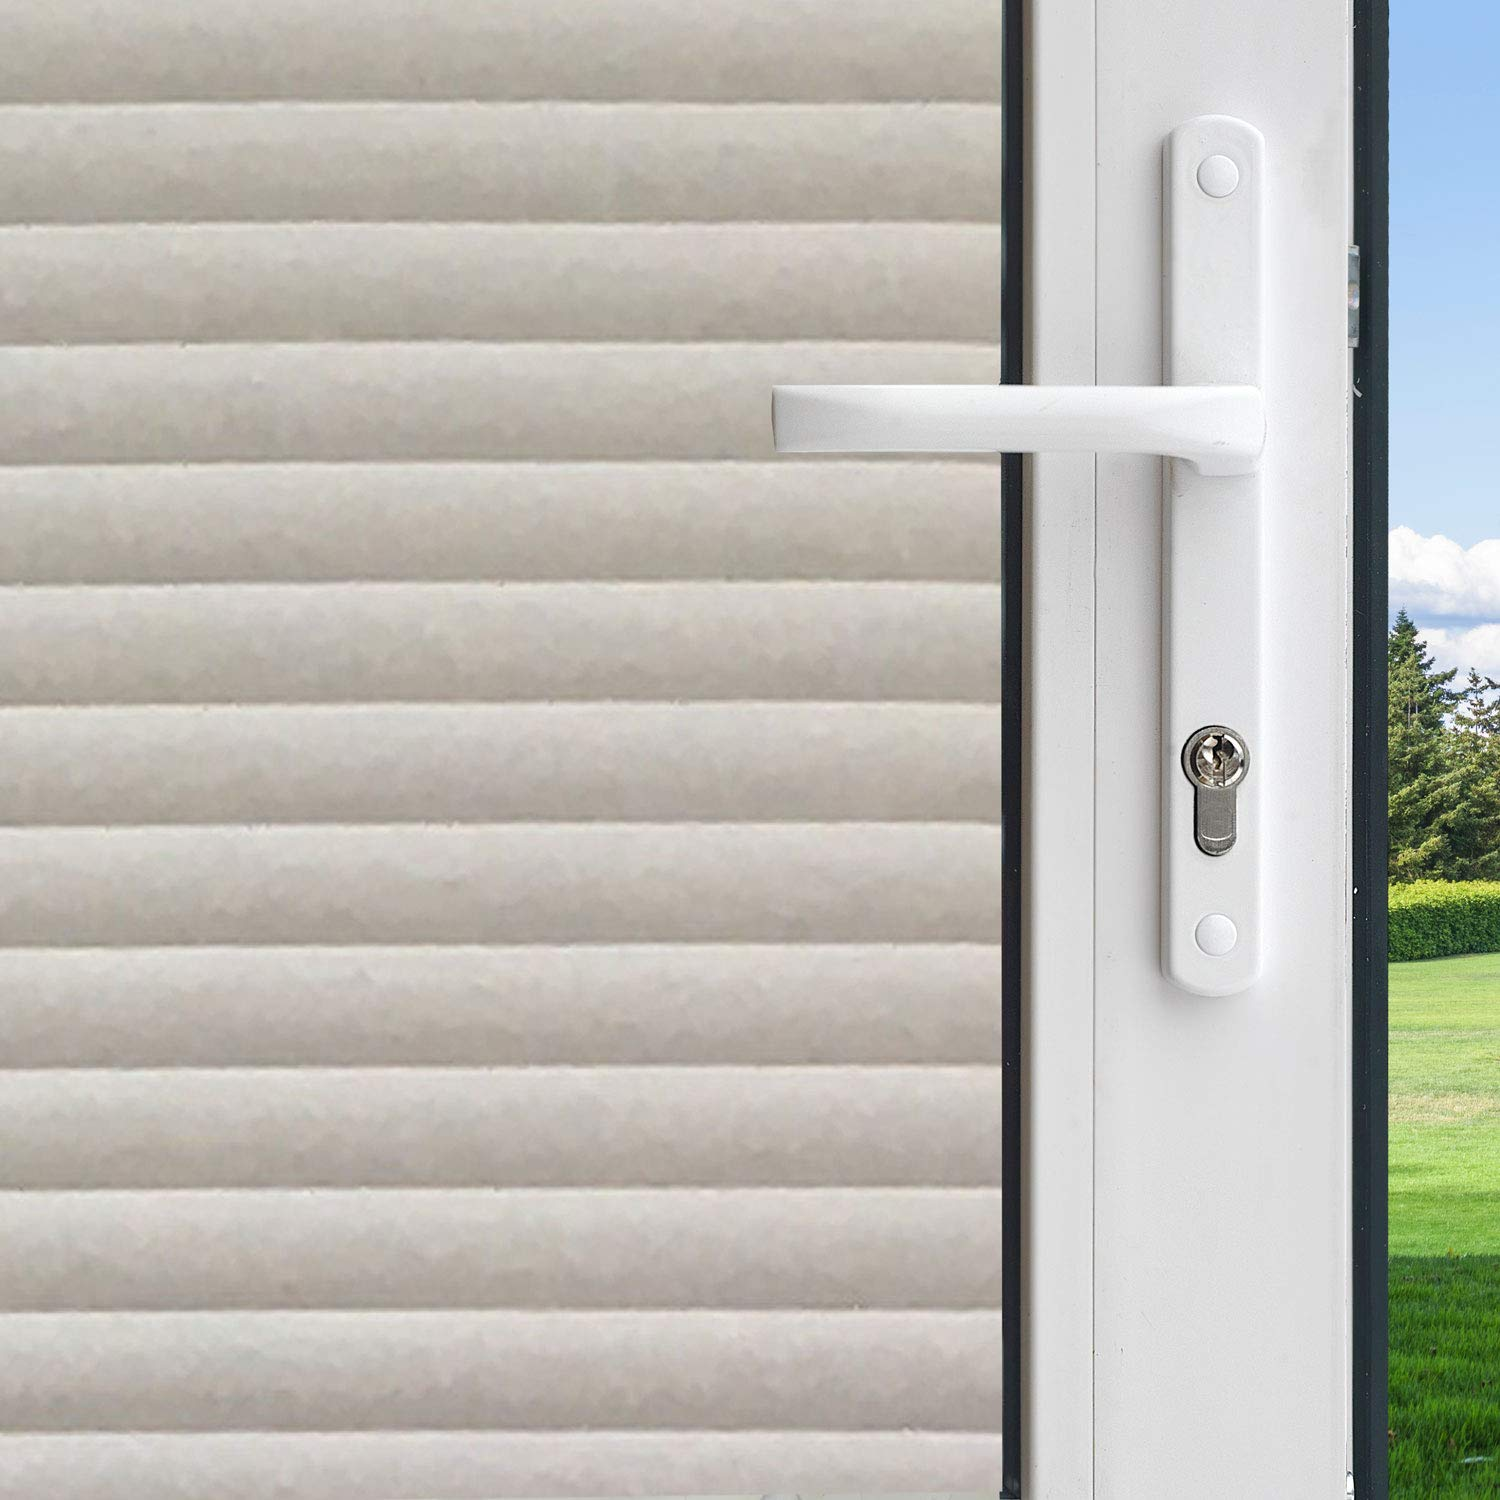 Gila 50188236 Film-36 x6.5 Faux Shades Decorative Privacy Control Static Cling Window Film 36 x 78-INCH (3 6.5 ft.), 36in x 78in by Gila